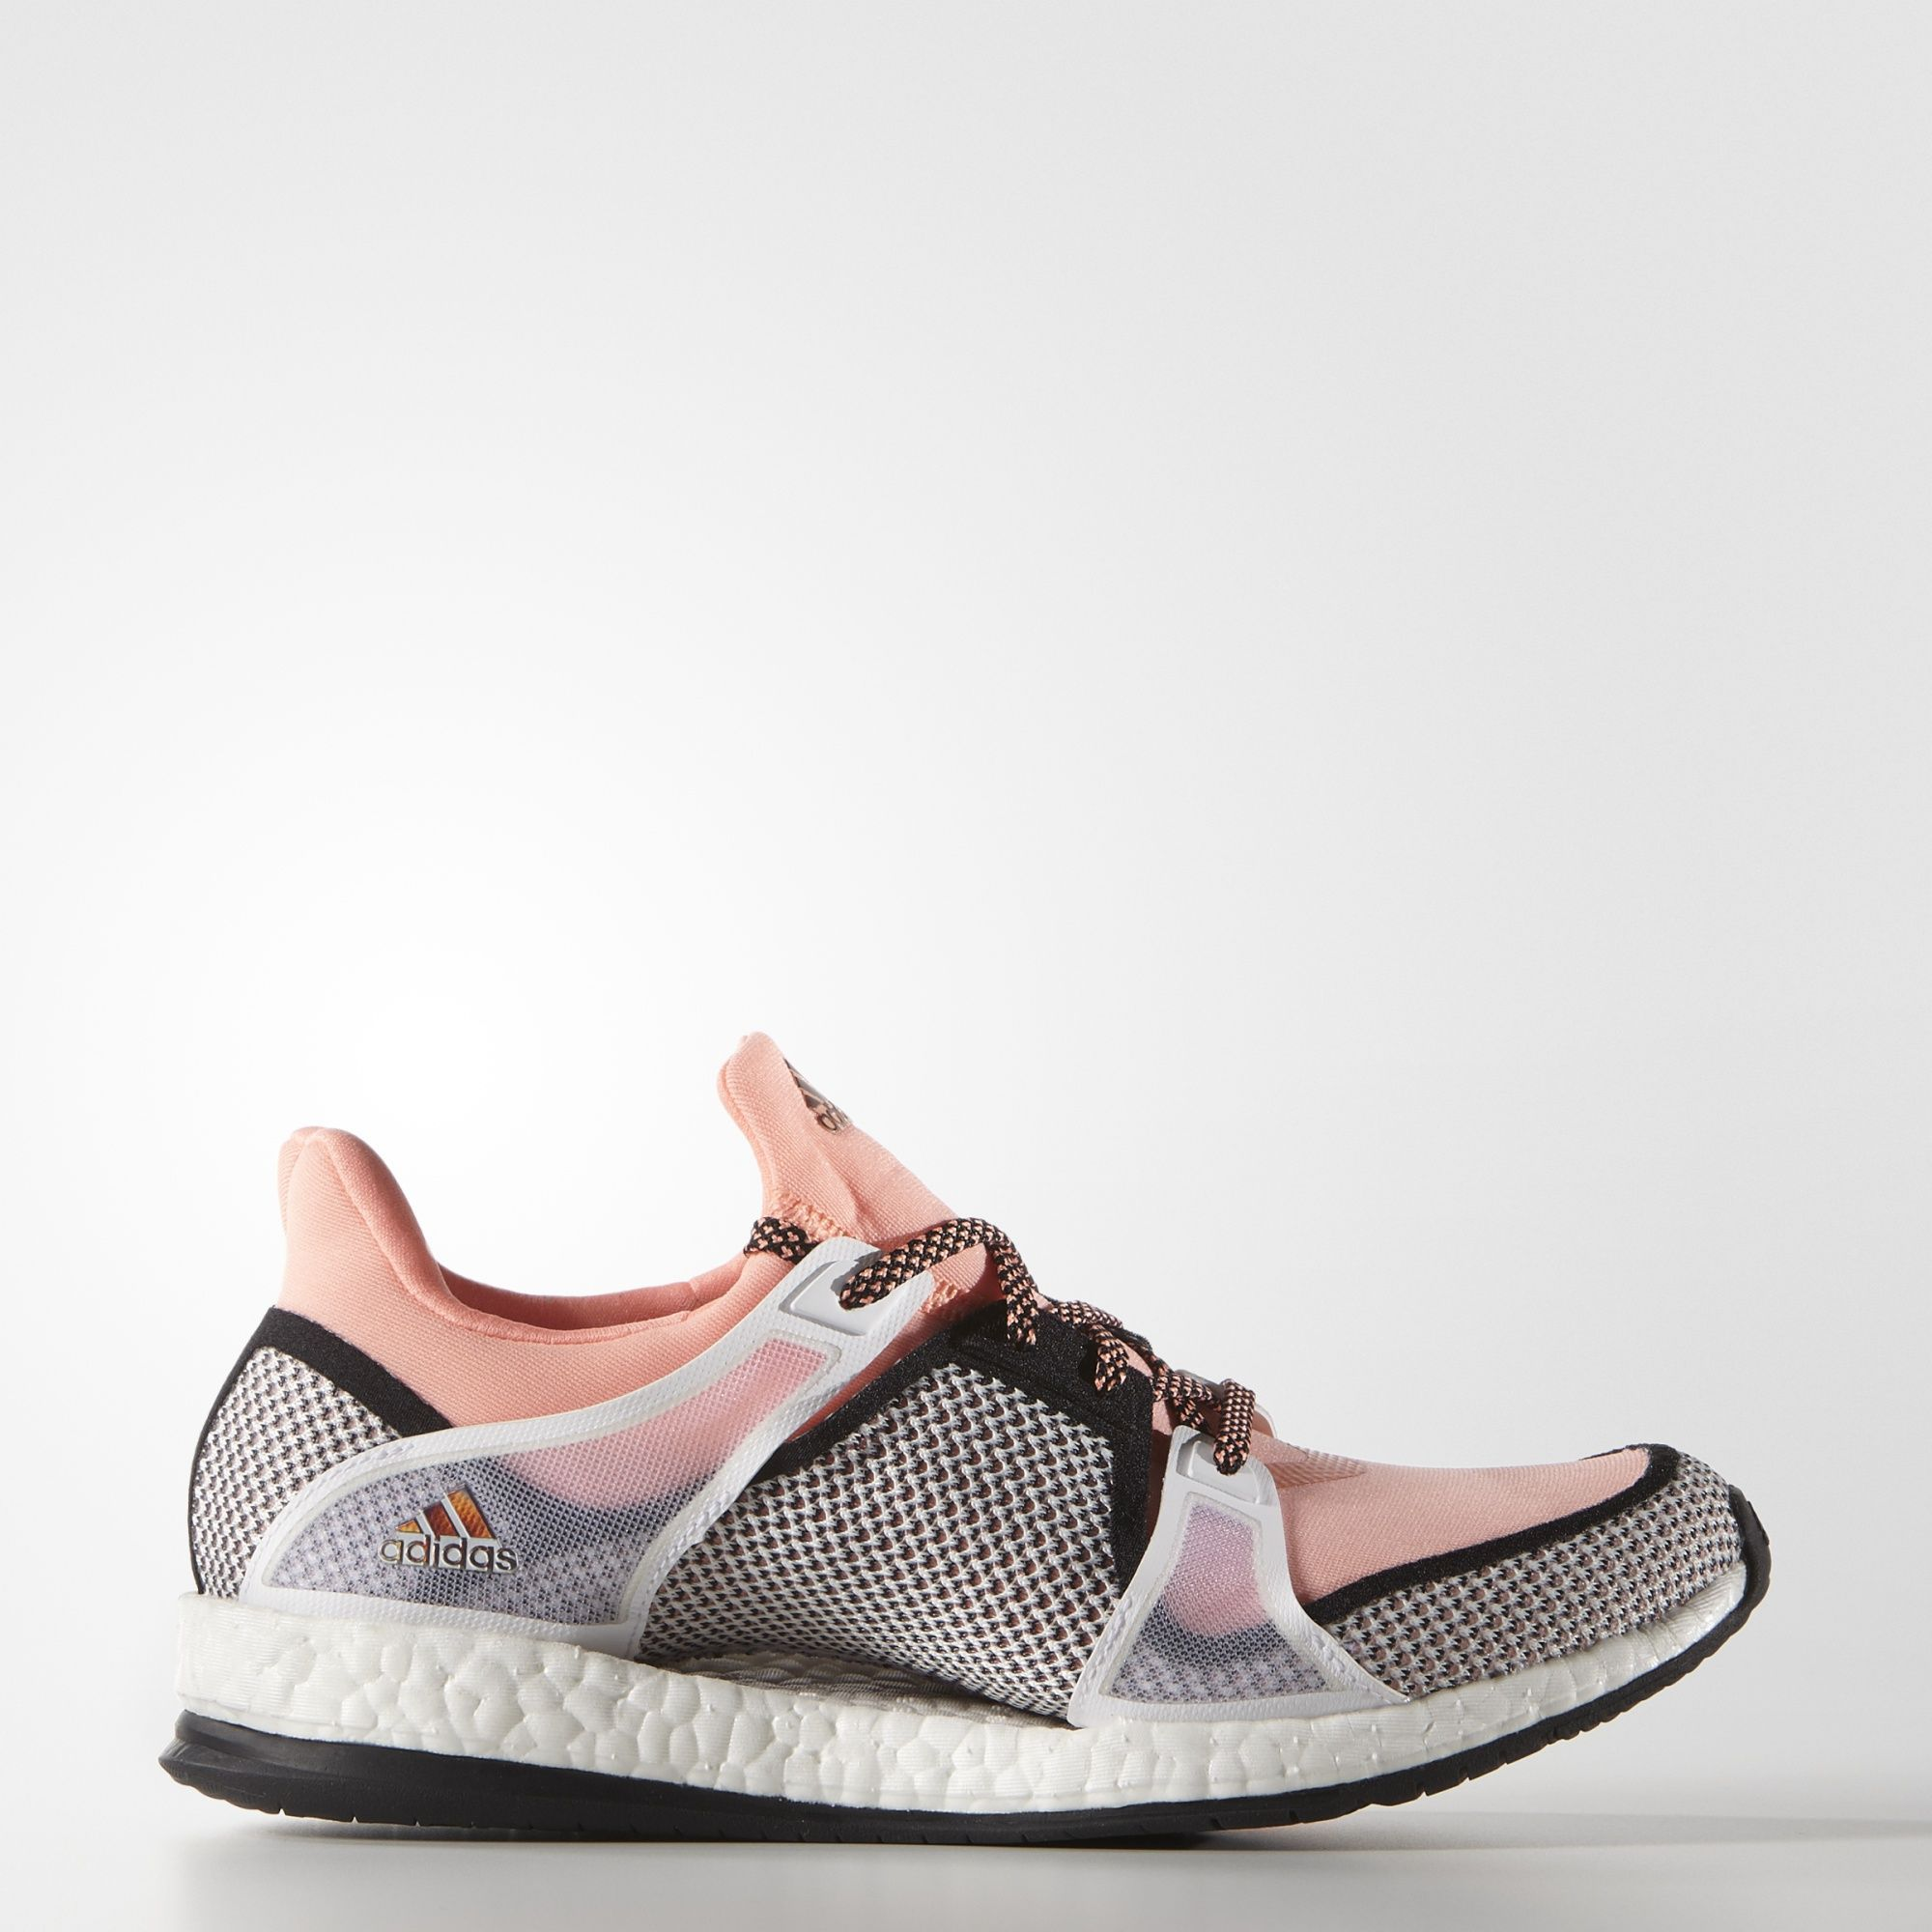 adidas ultra boost multicolor black boosts metabolism adidas superstar with rose gold stripes